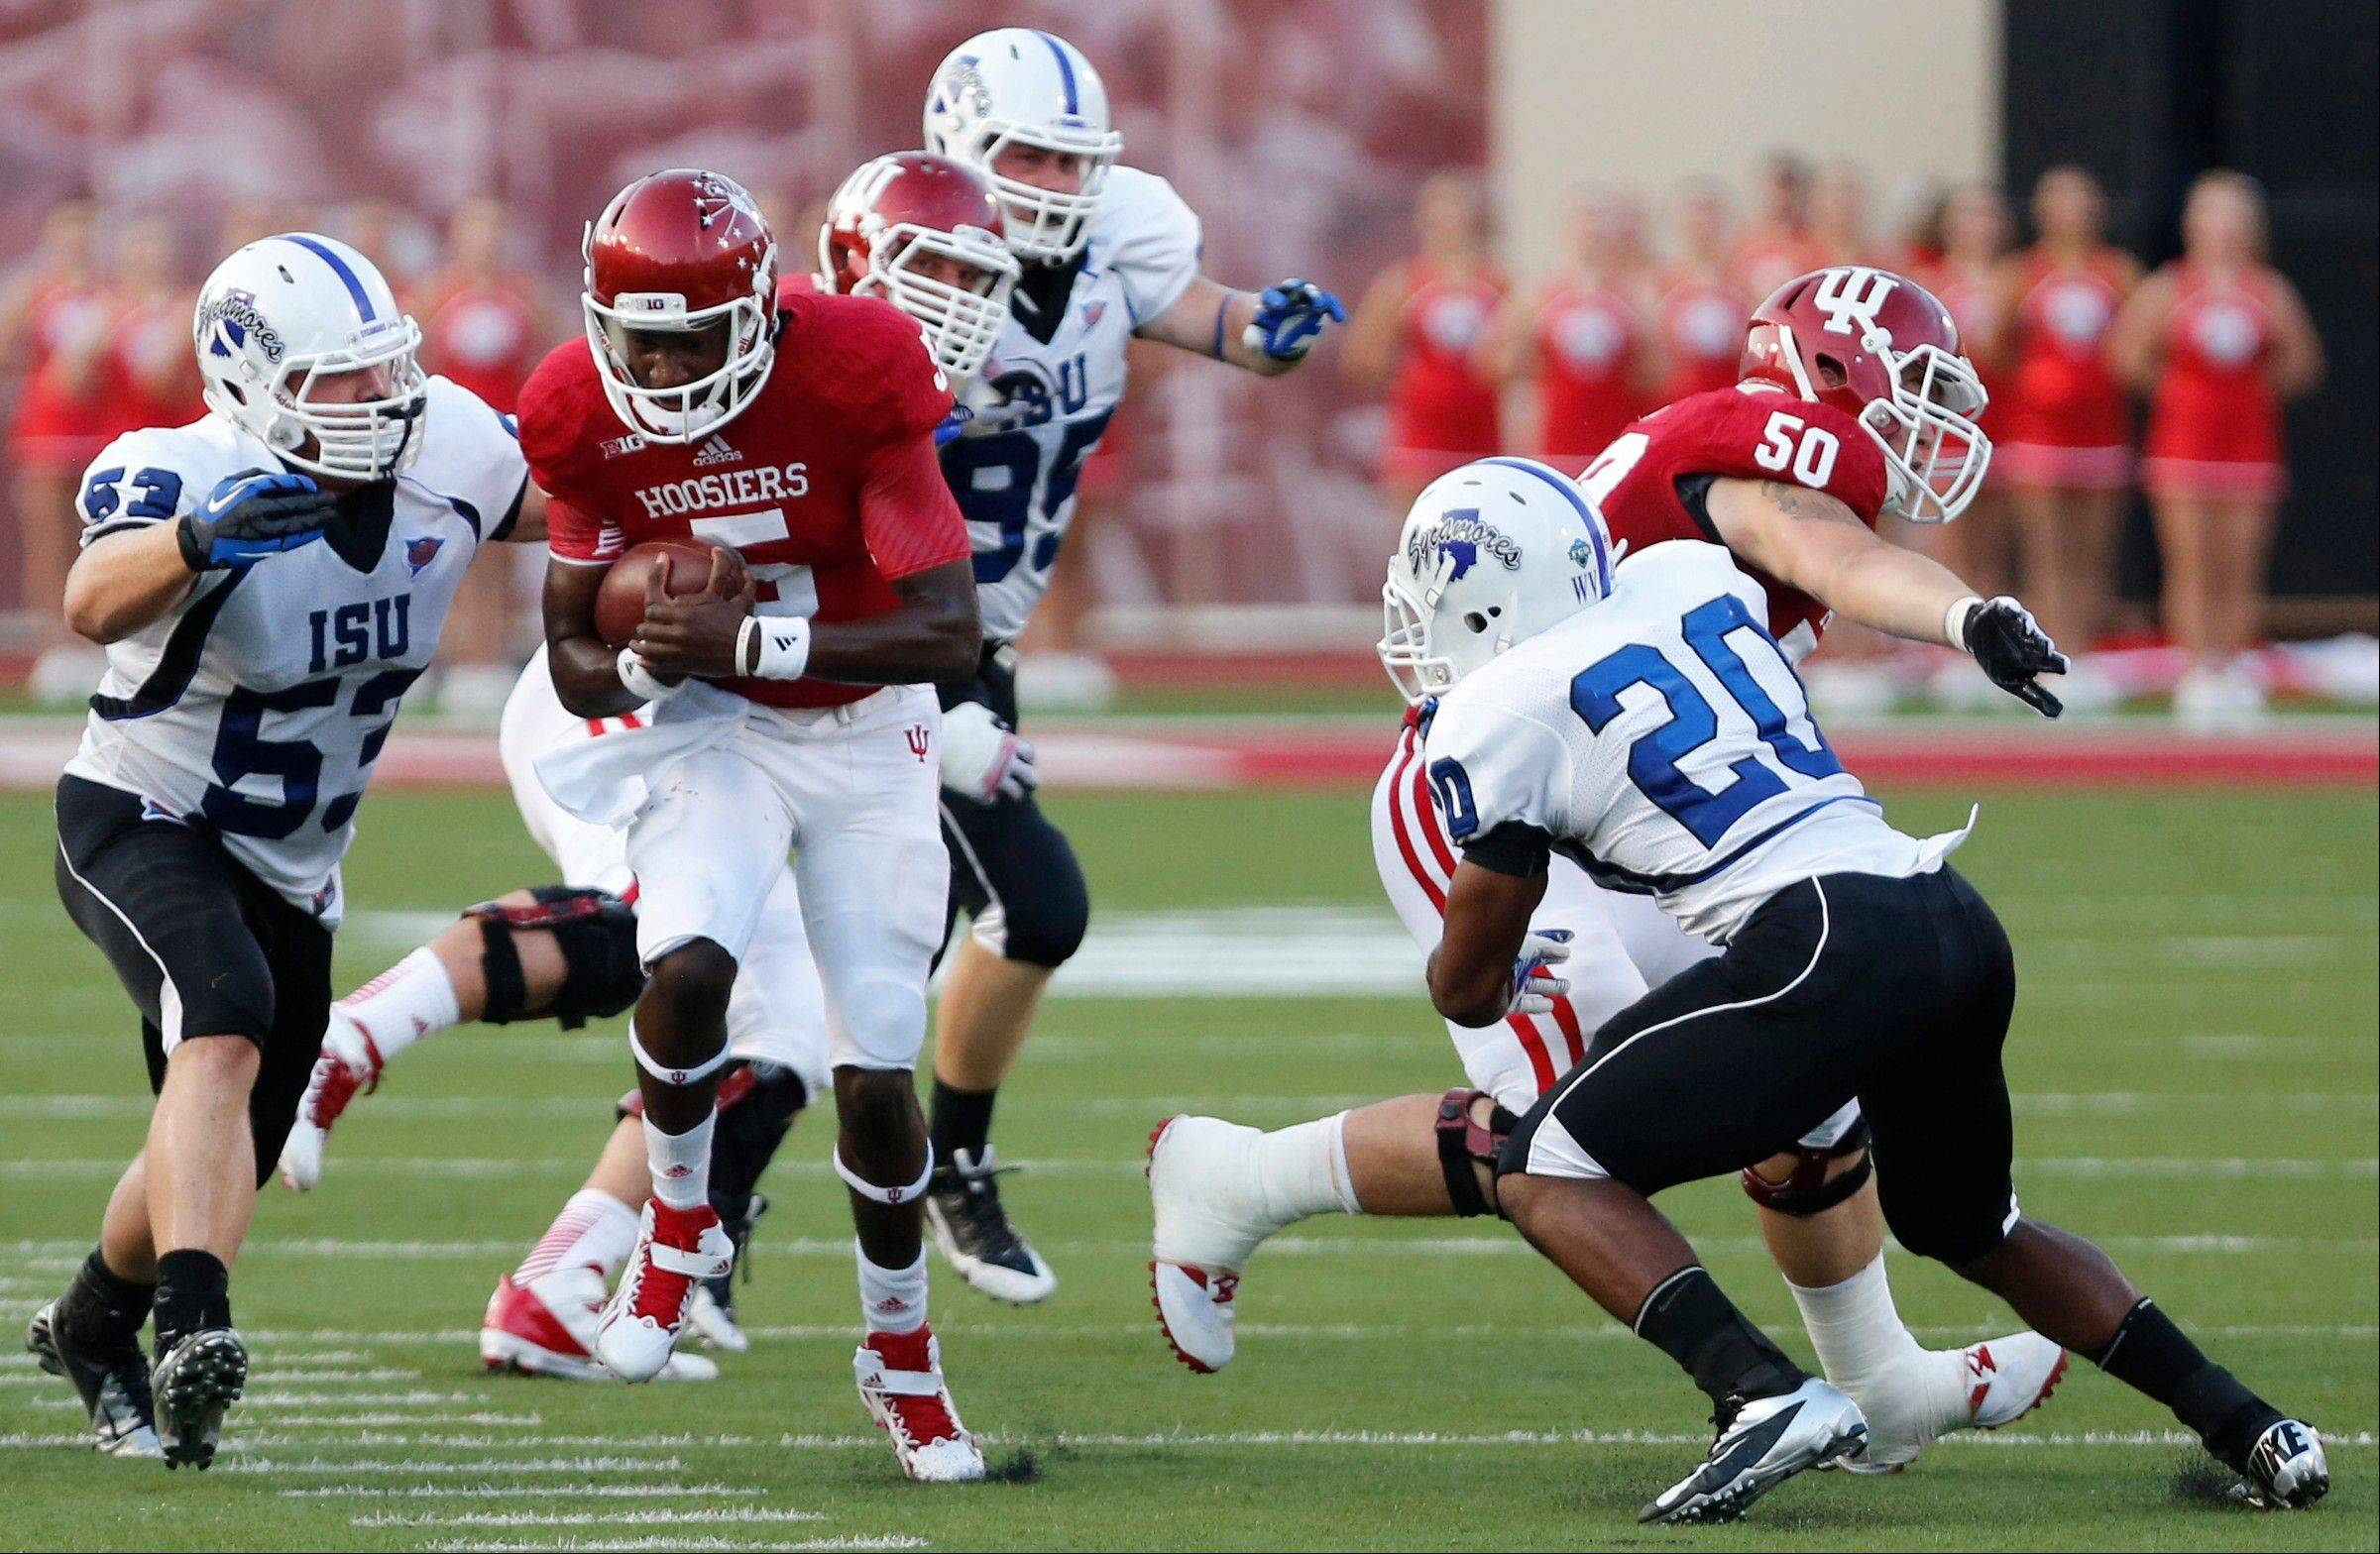 Indiana quarterback Tre Roberson (5) carries the ball against Indiana State on Thursday night at Memorial Stadium in Bloomington, Ind.